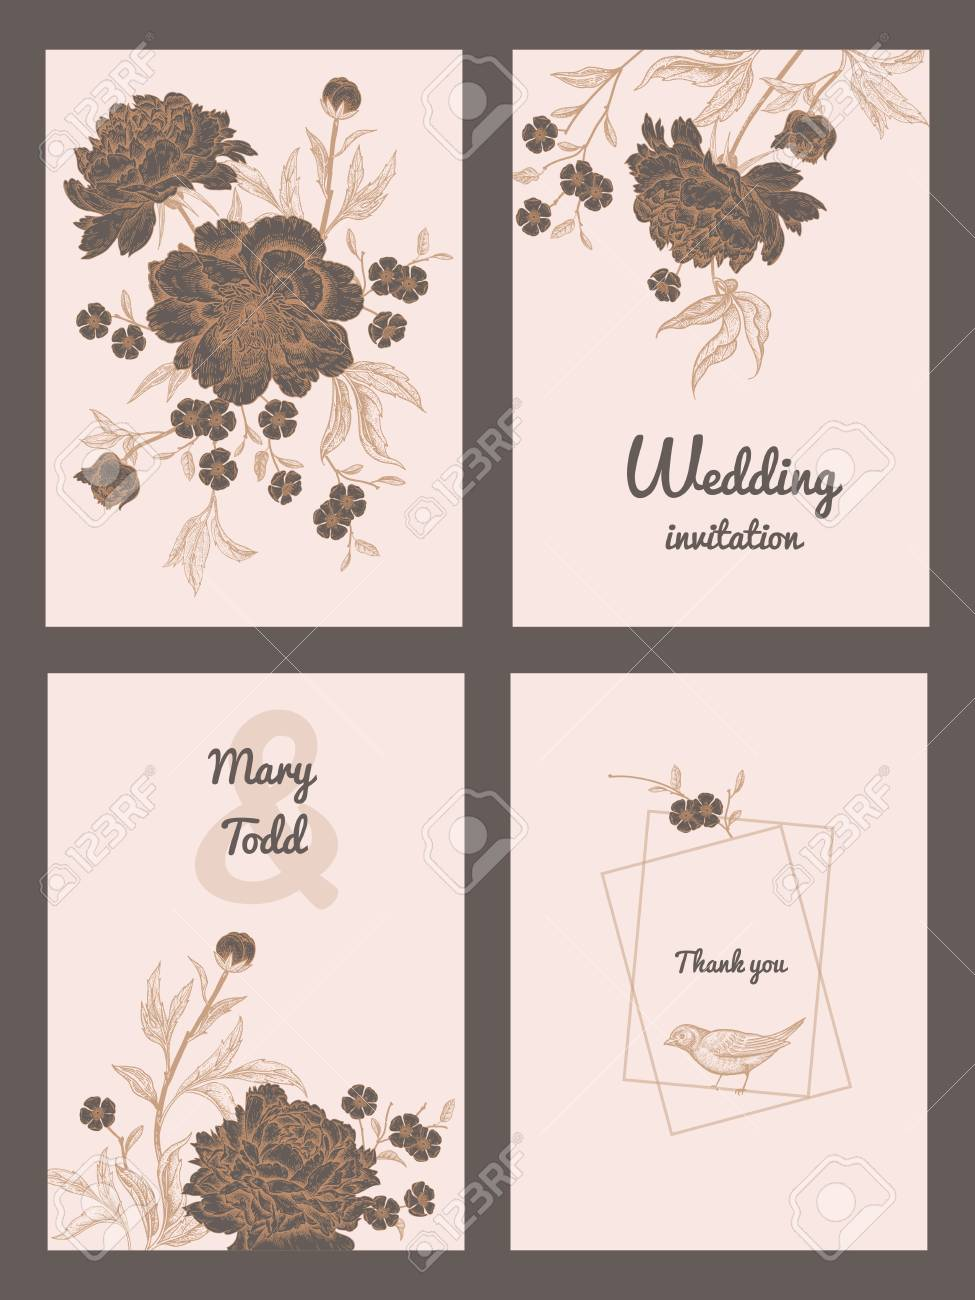 templates of wedding invitations set decoration with birds and